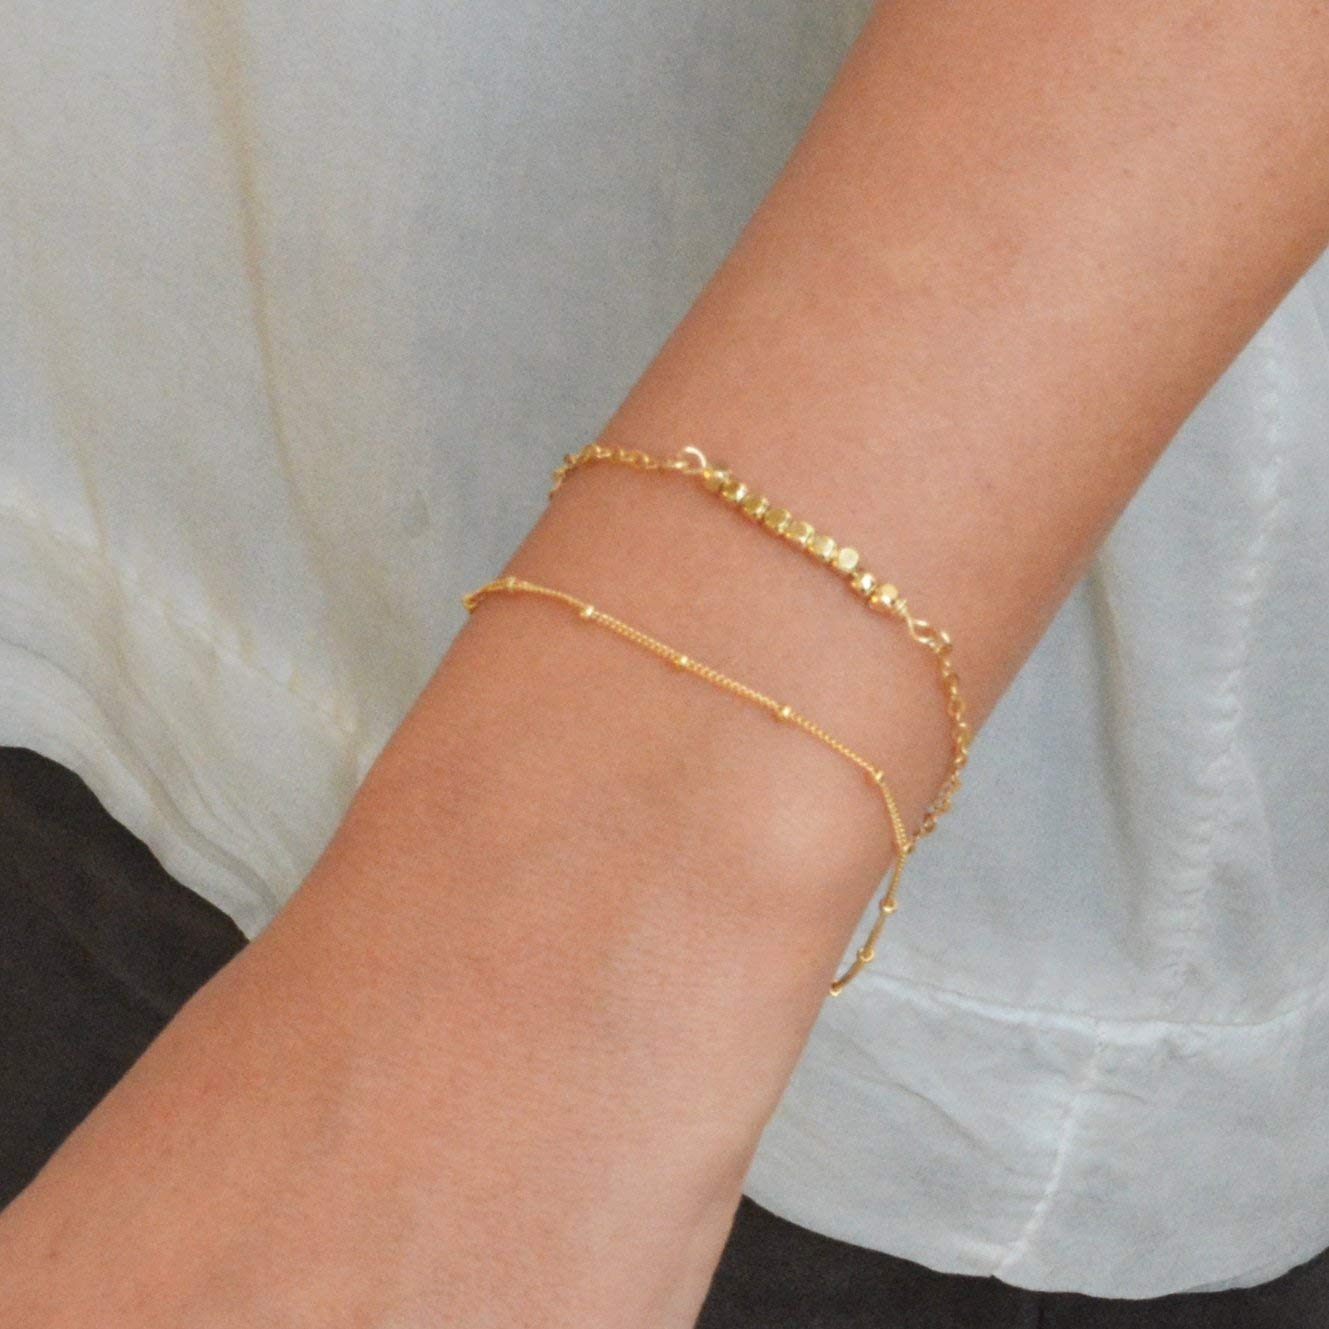 Gold Filled Satellite Chain Bracelet Dainty Thin Layering Length 15 cm extension